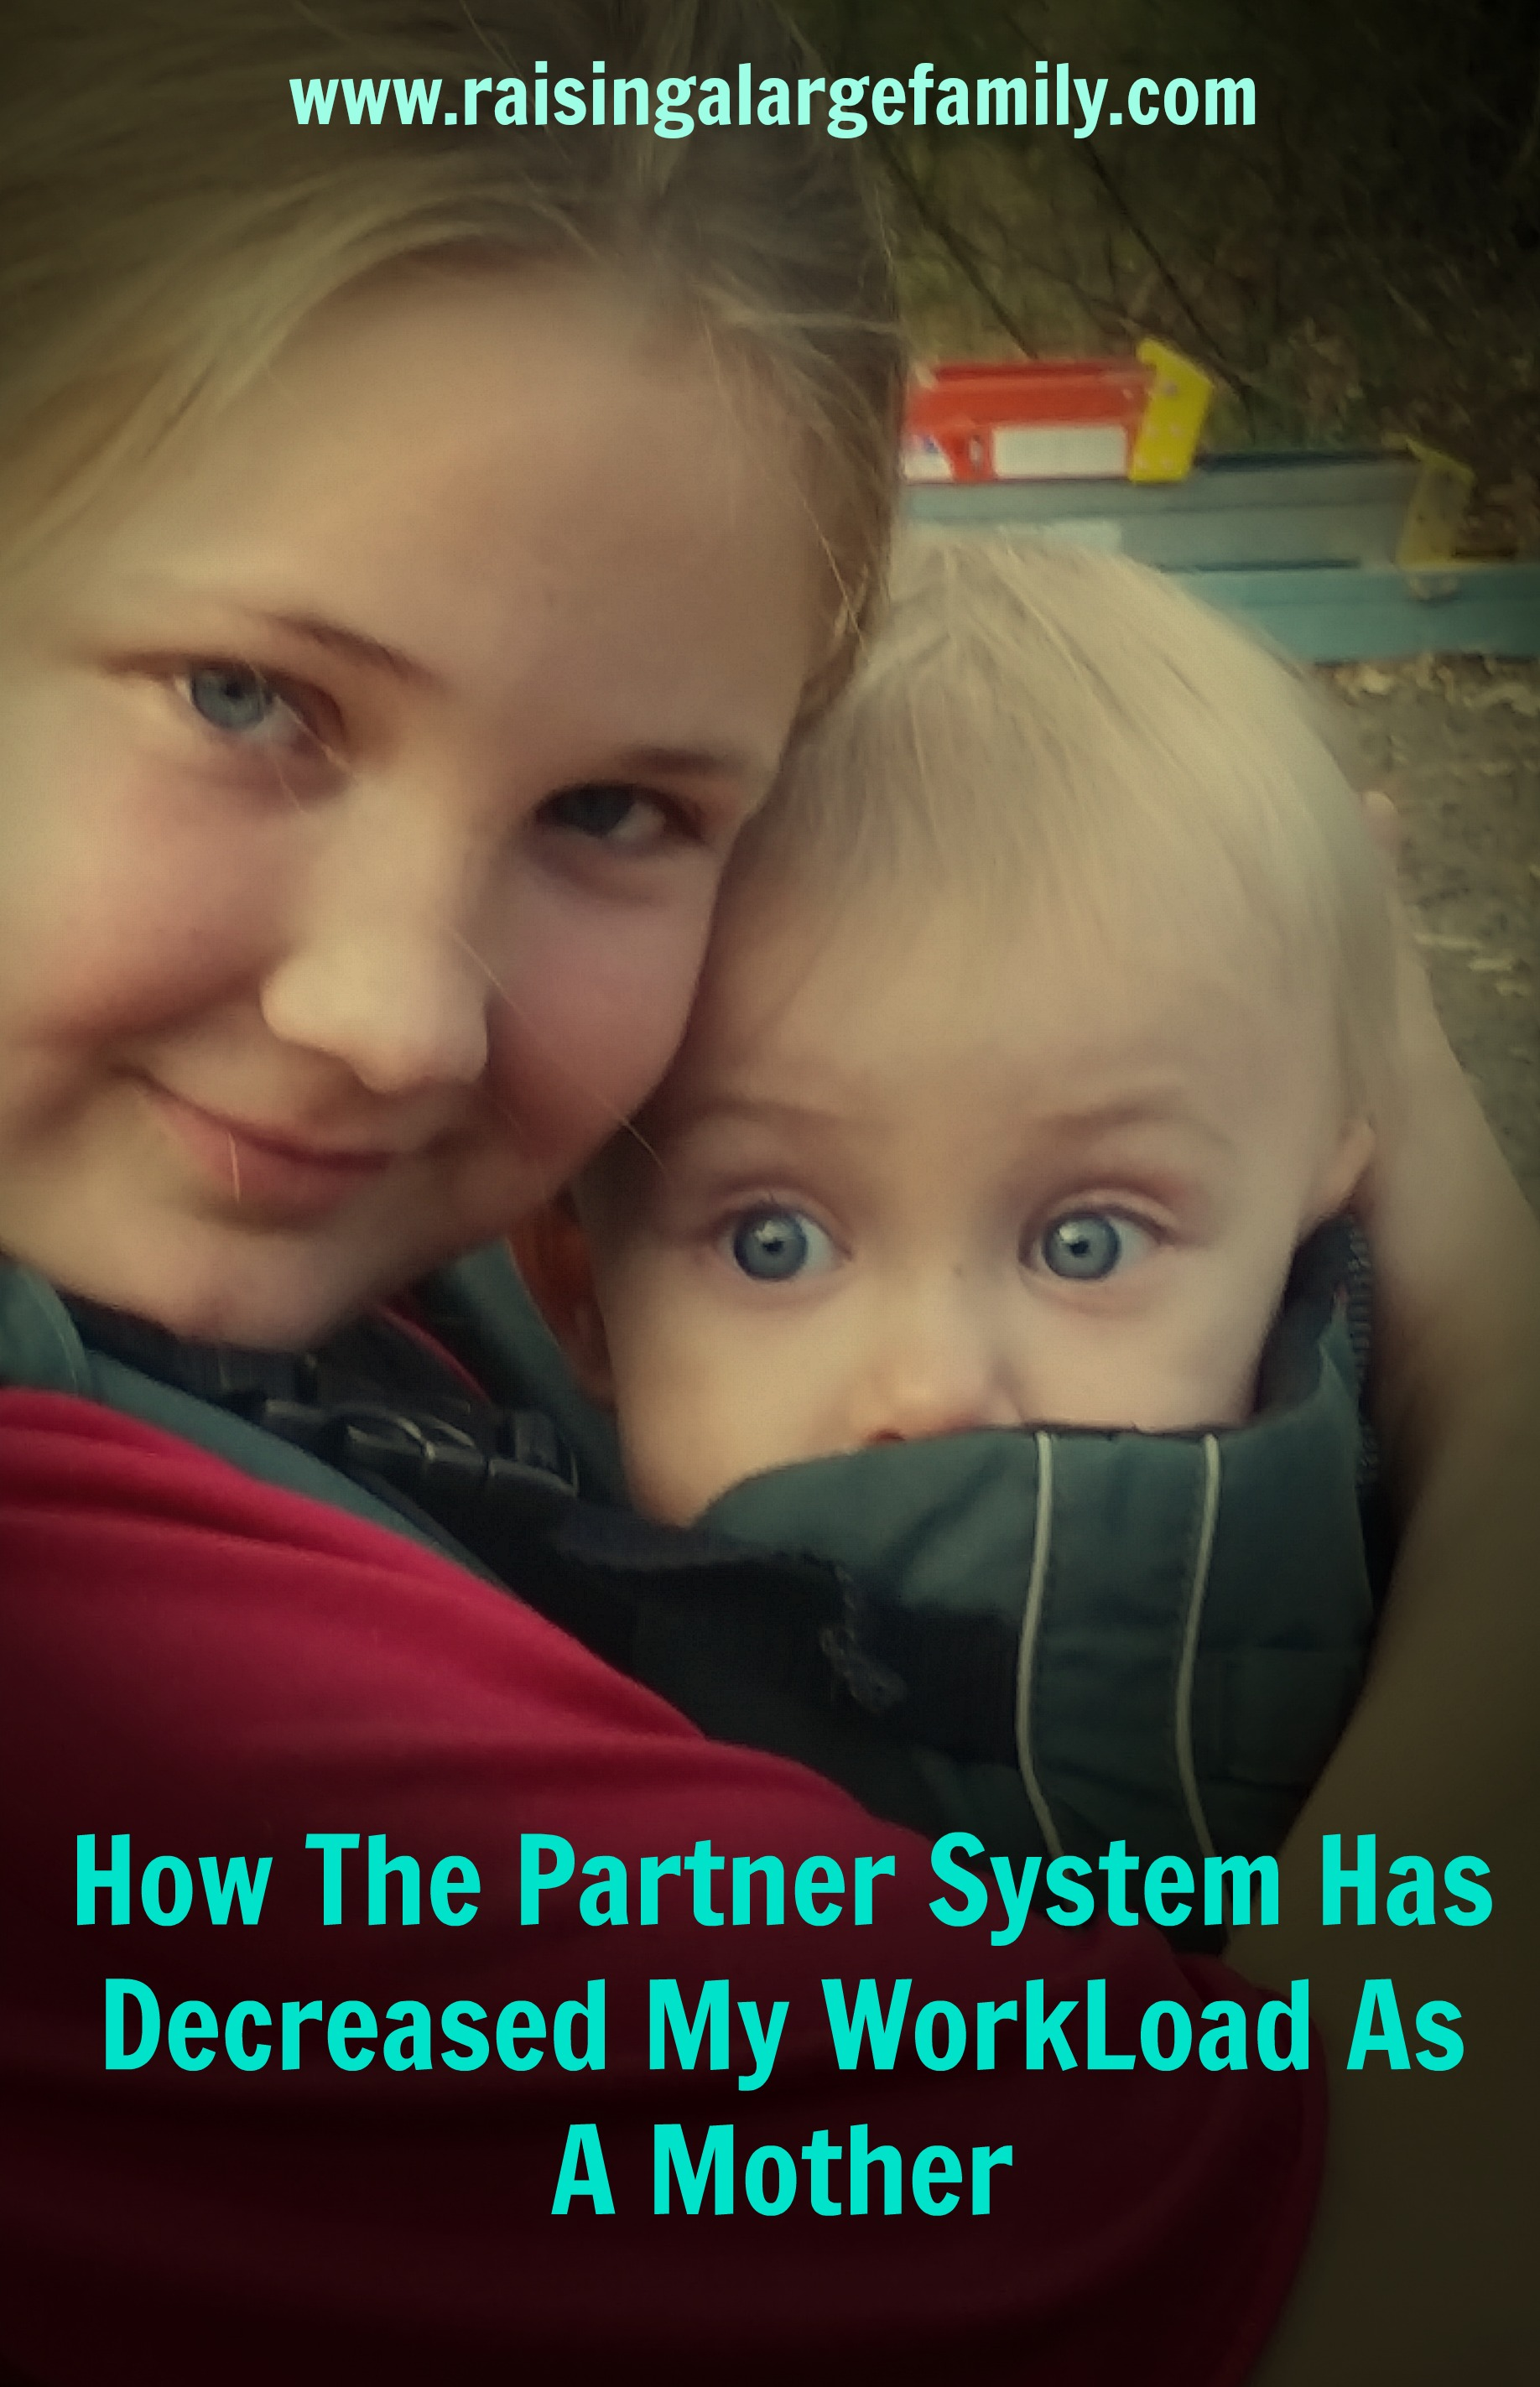 Reduce Your Chores and Bring Your Children Closer Together Through The Partner System